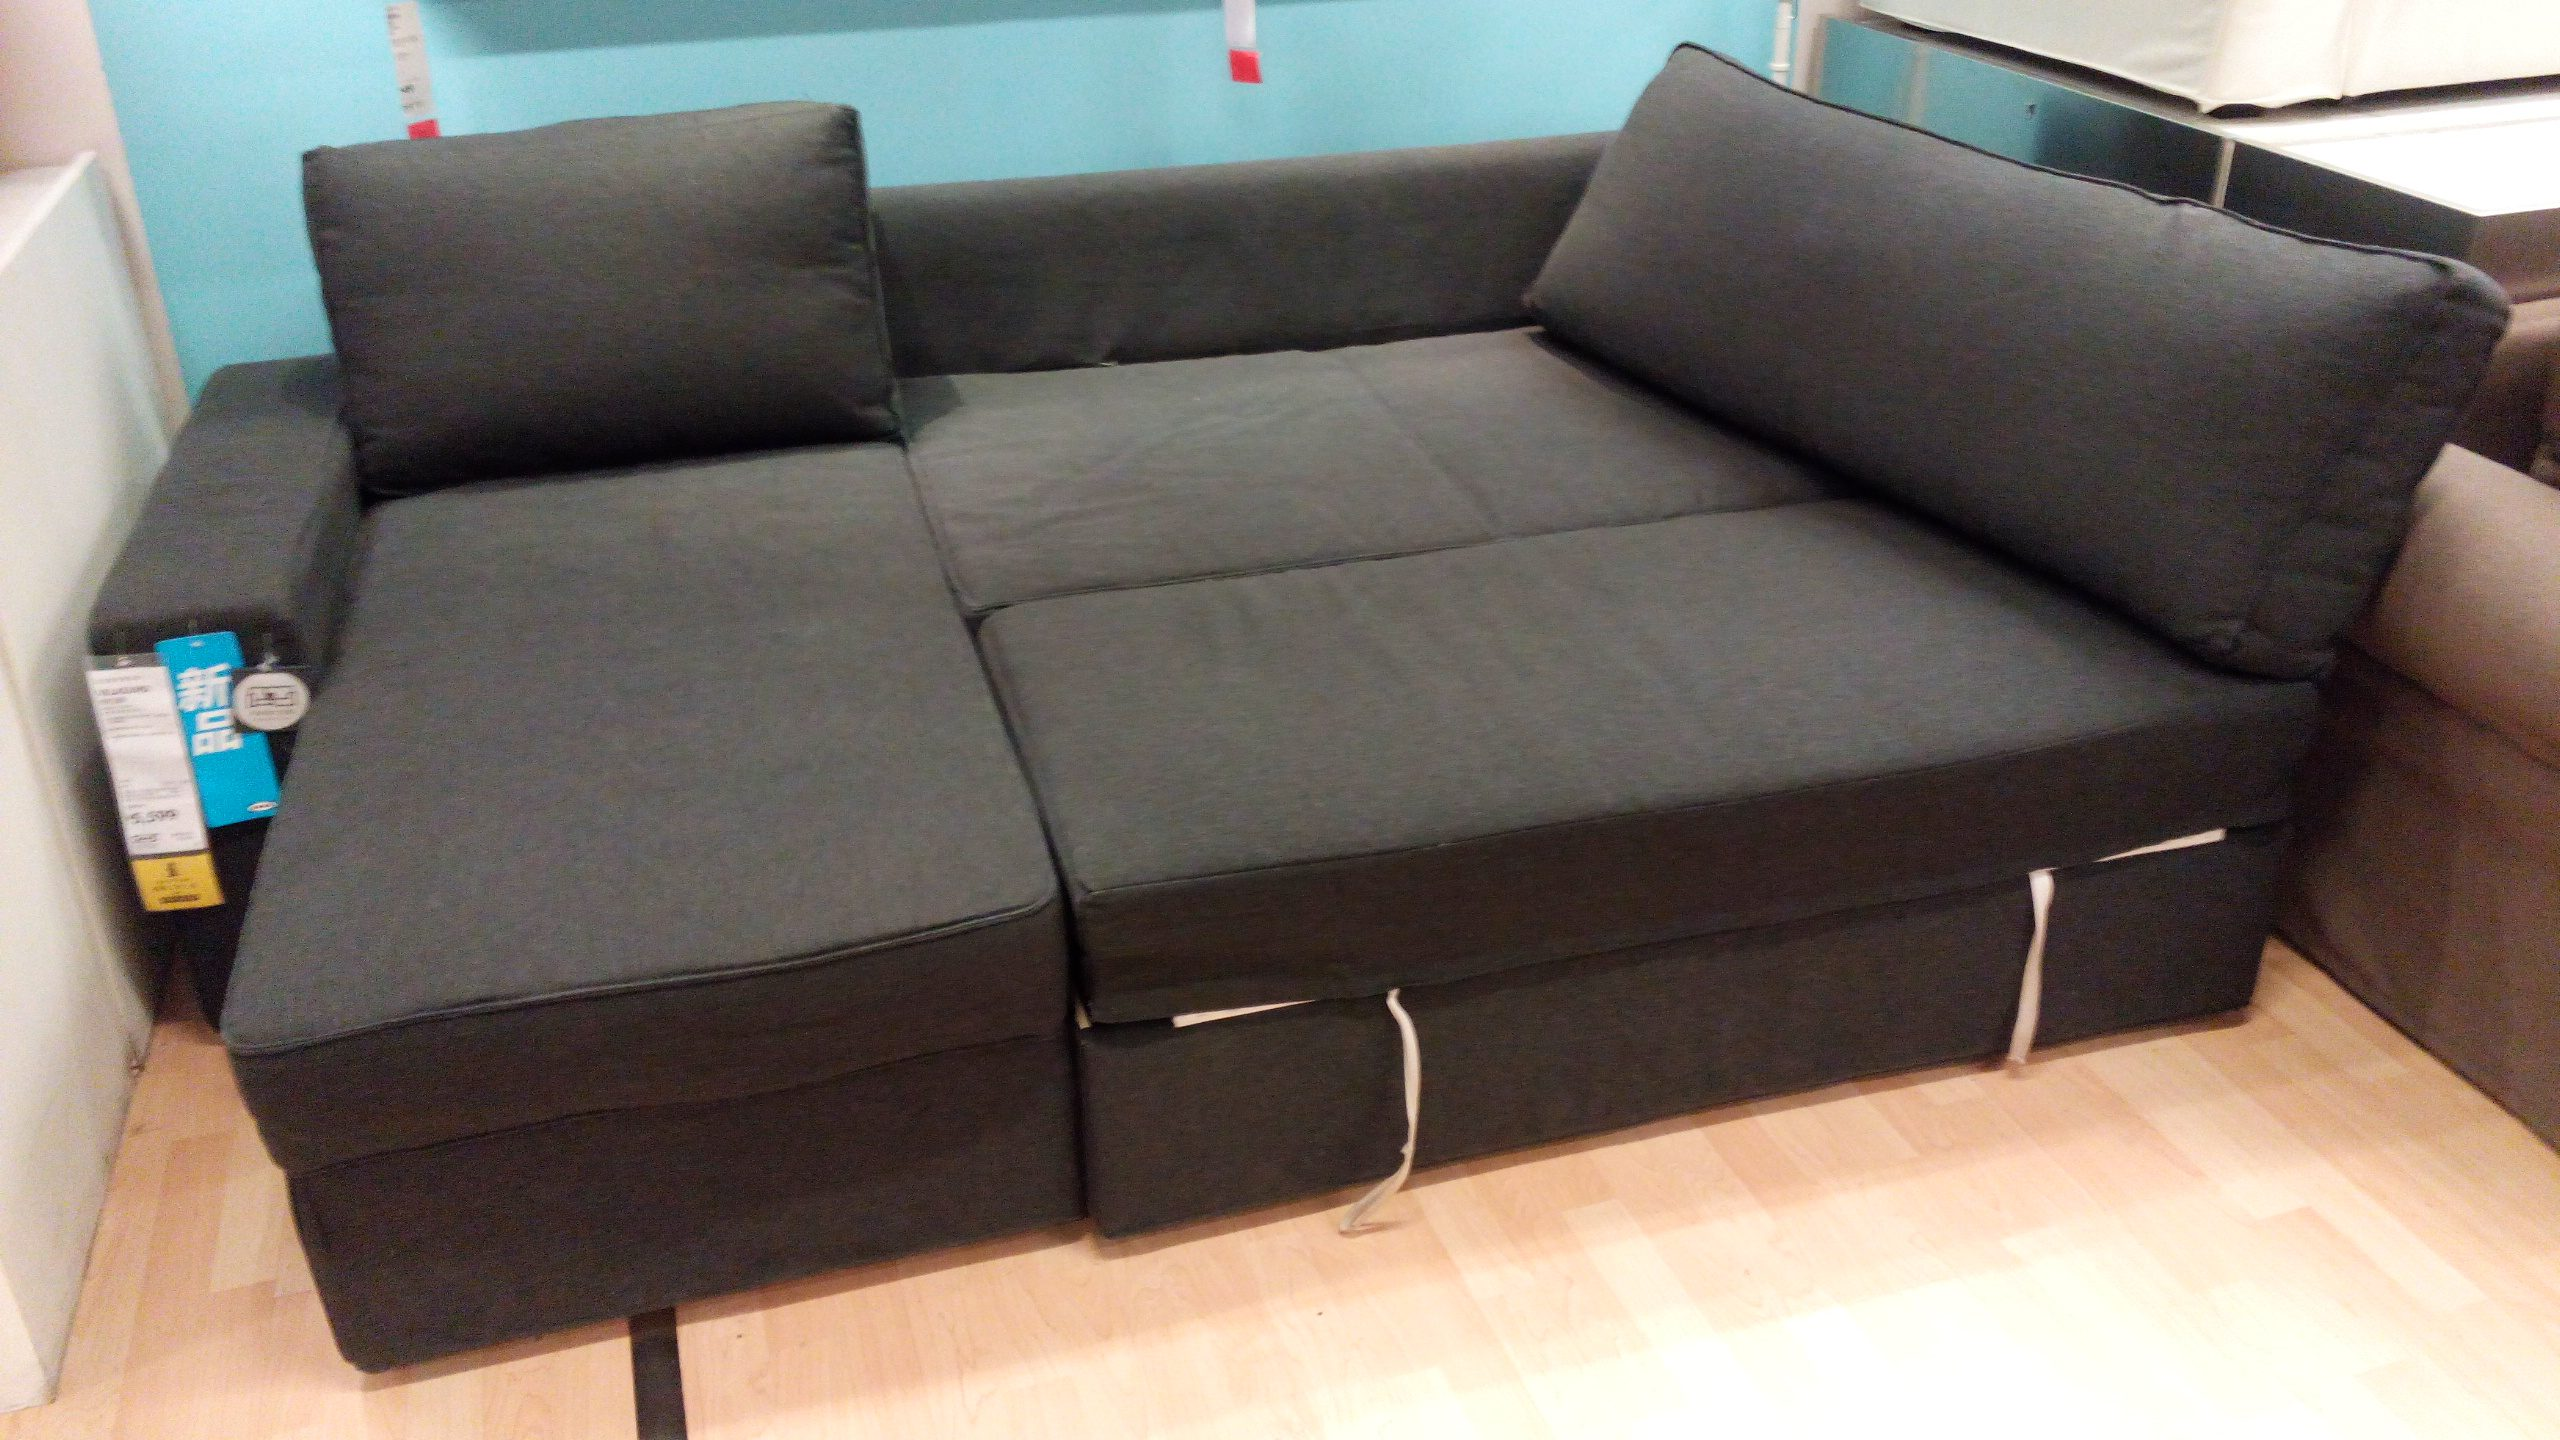 Recamiere ikea stocksund  IKEA Vilasund and Backabro Review - Return of the Sofa Bed Clones!